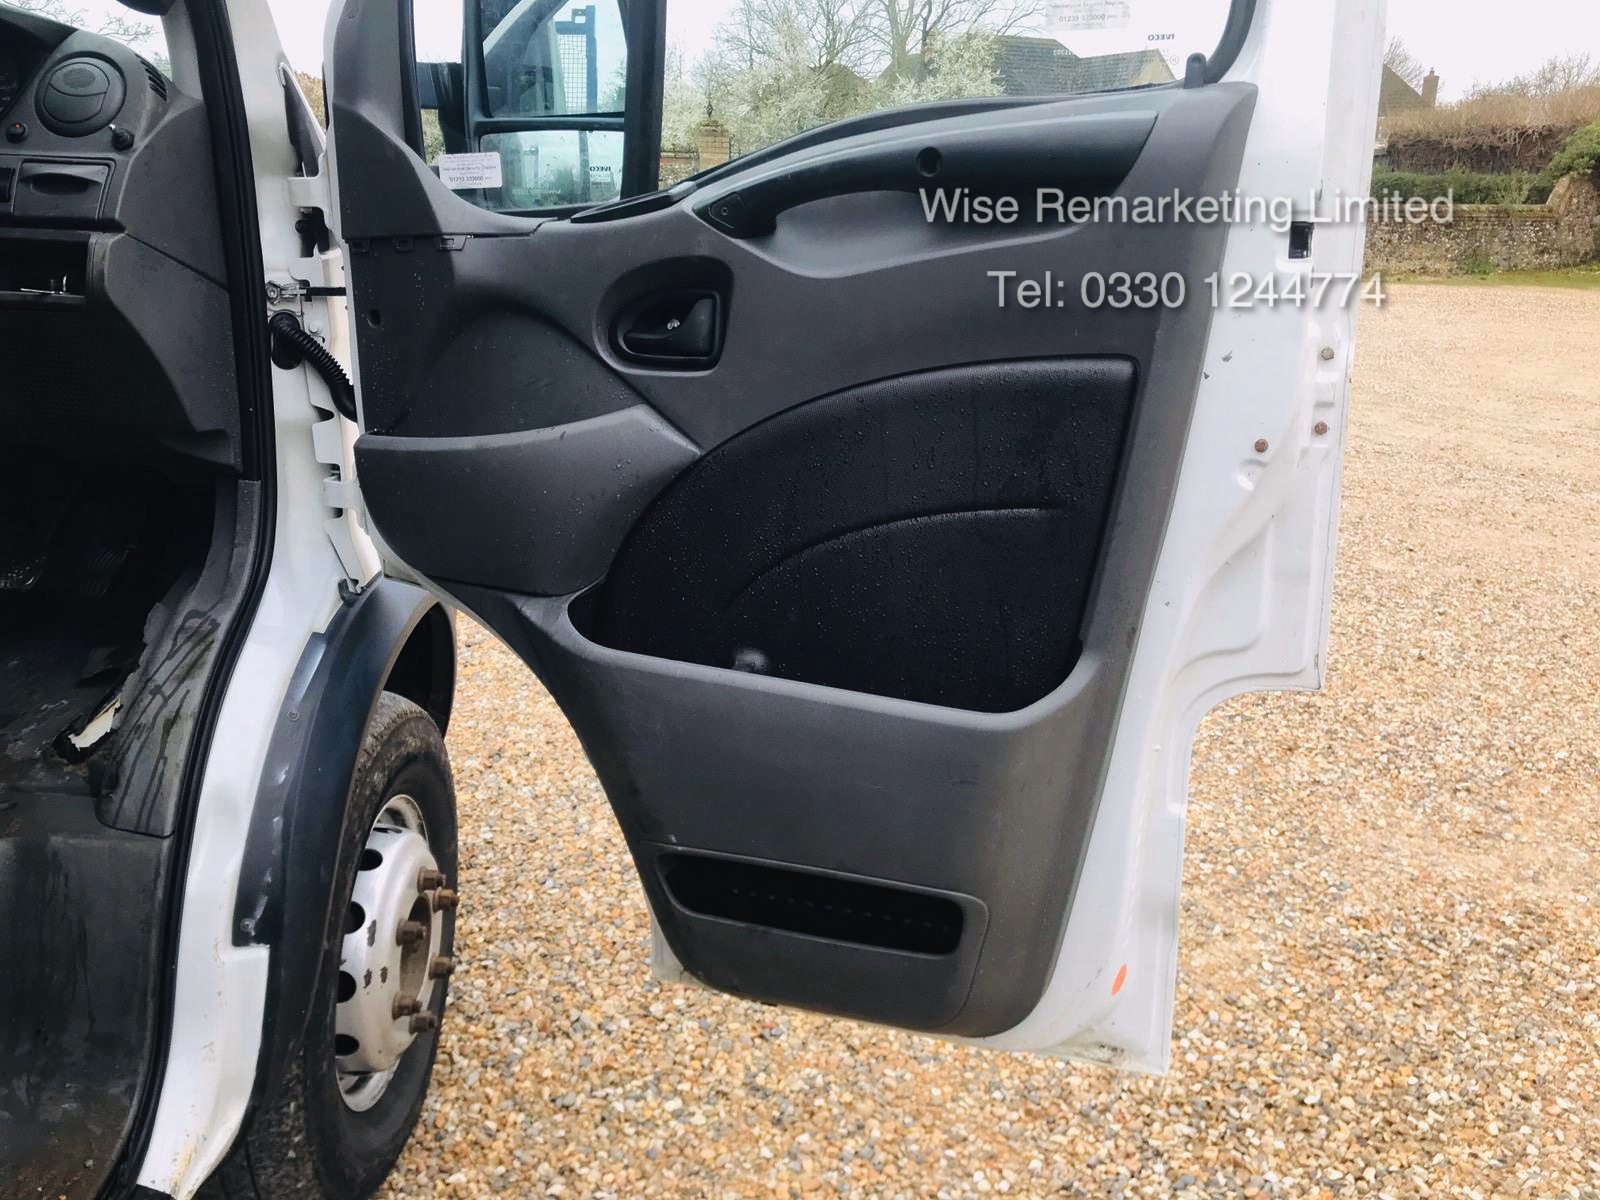 Iveco Daily 3.0 TD 60C18 Tipper (Twin Wheeler) - 6 Speed - 2011 Model - 1 Keeper SAVE 20% NO VAT - Image 8 of 18